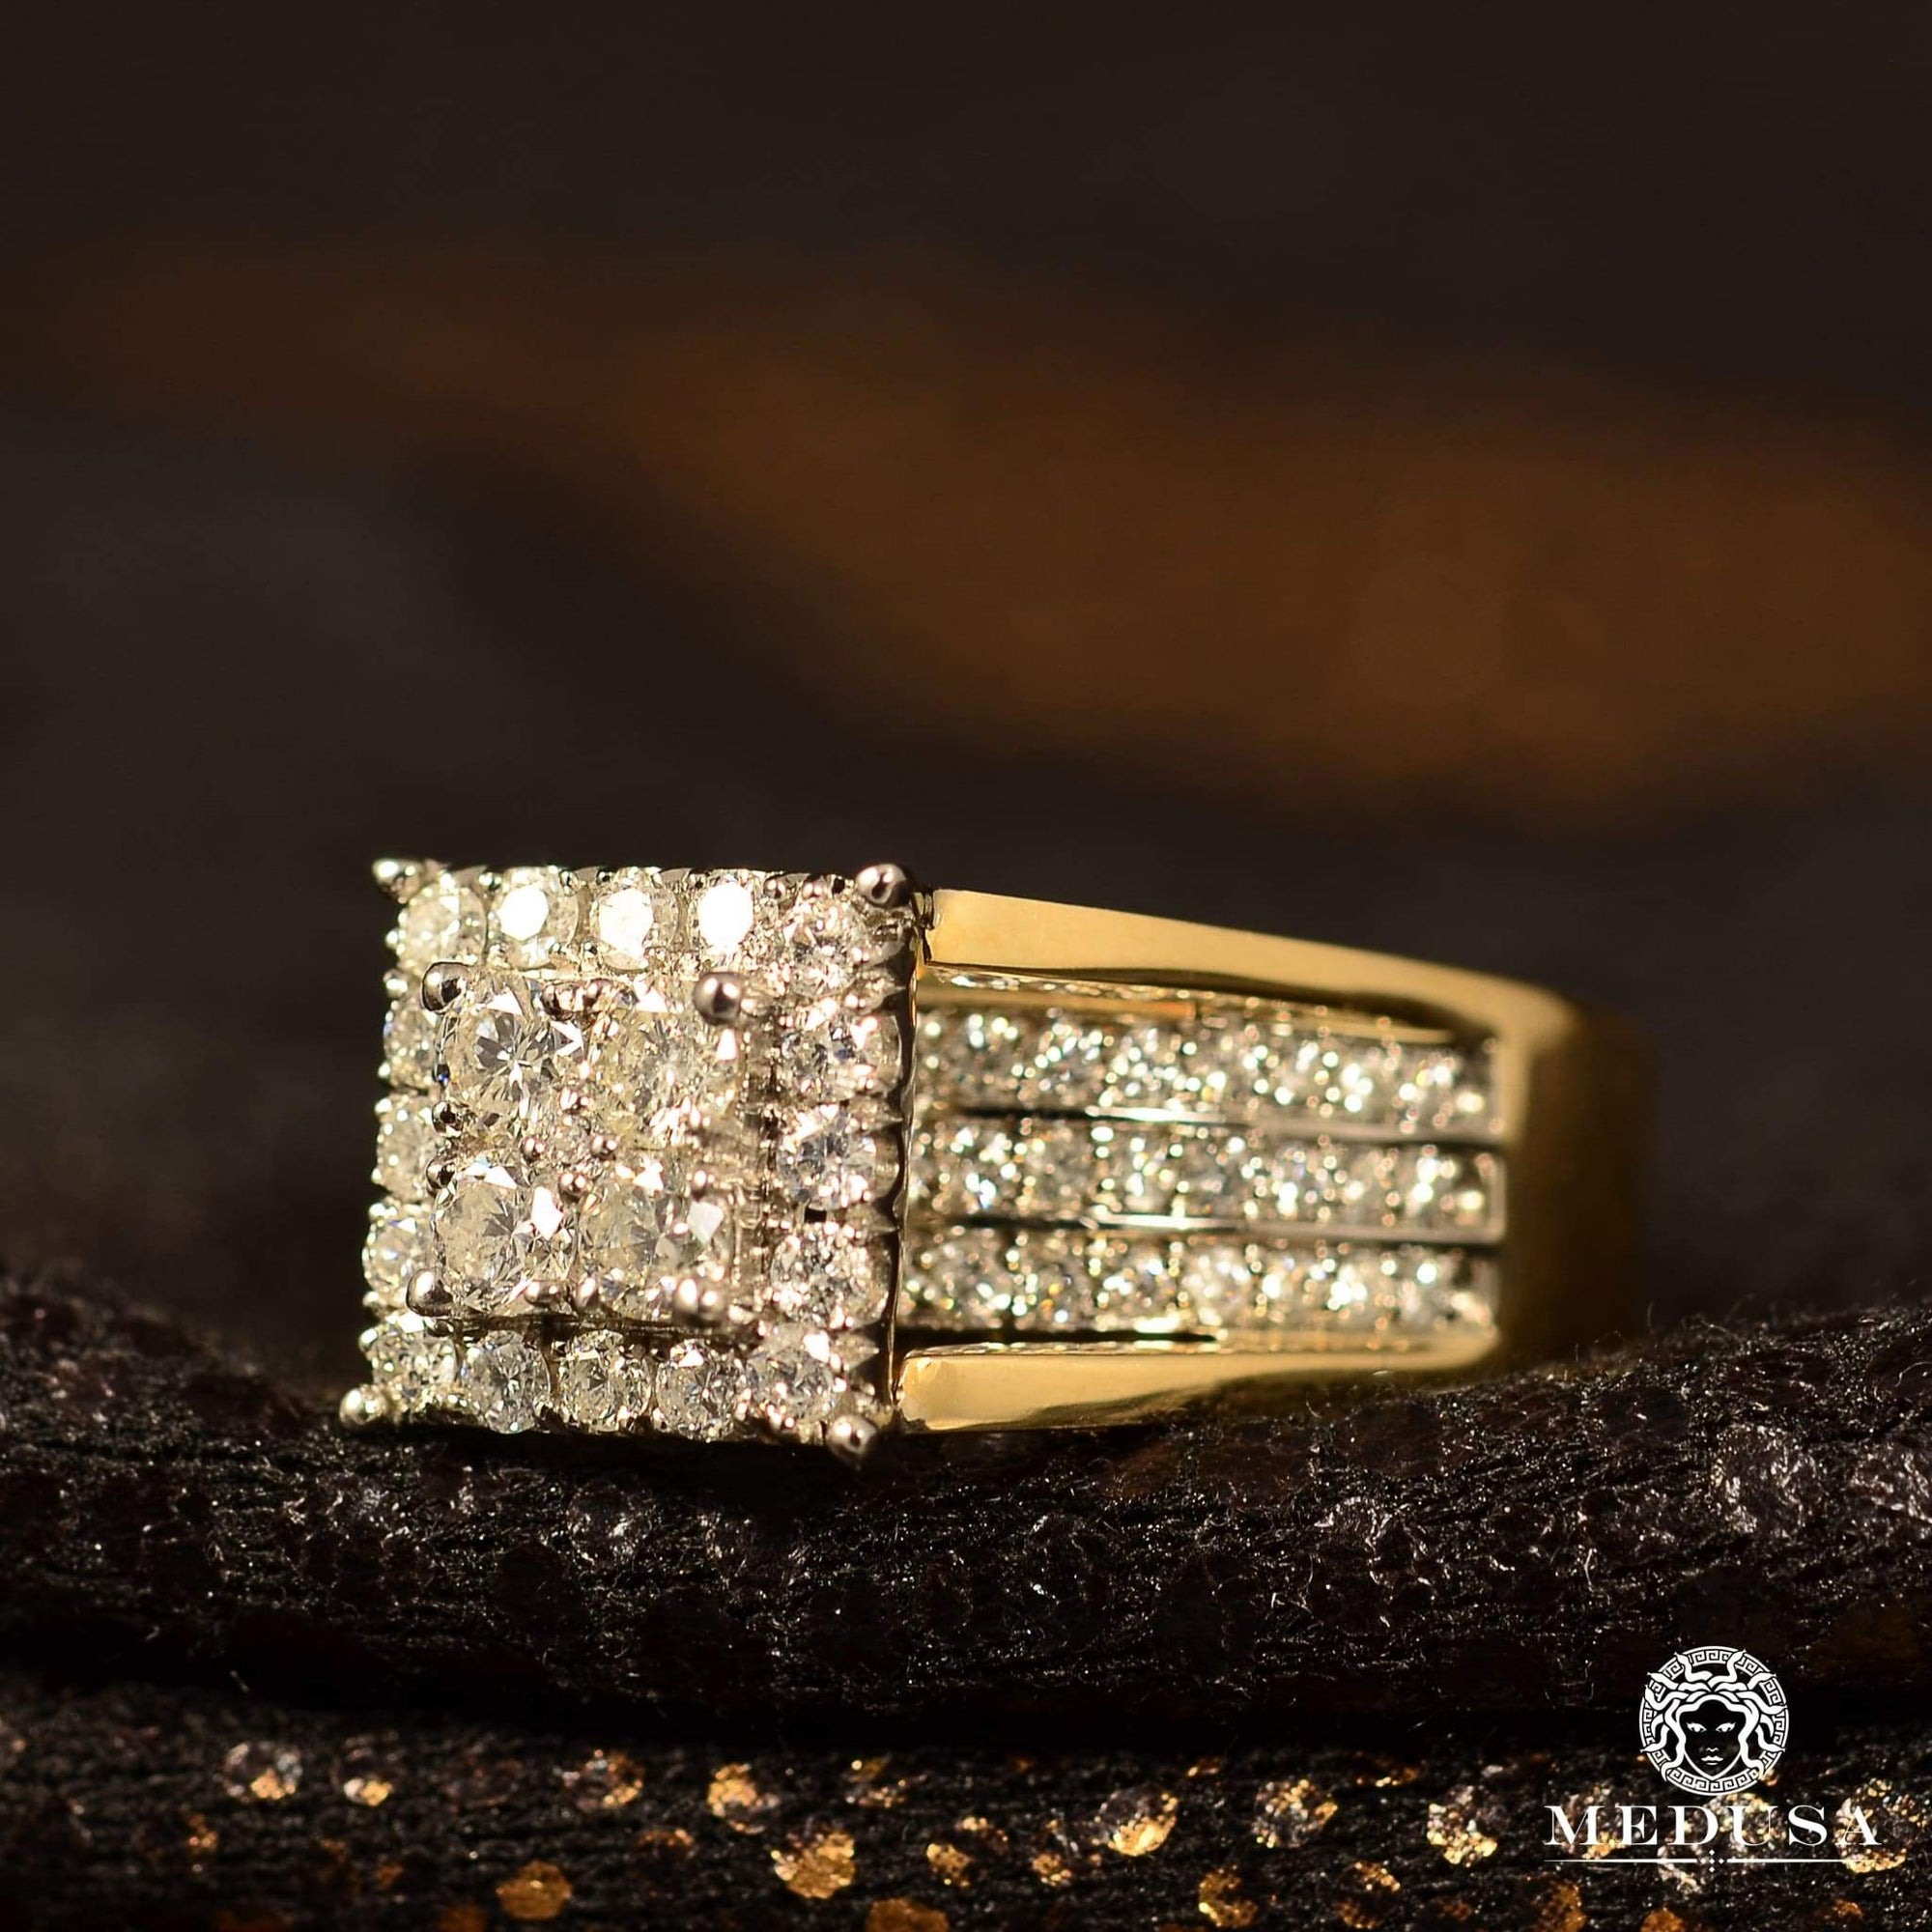 Bague à Diamants en Or 10K | Bague Femme Square F2 - Diamant 1 00CT / Or 2 Tons